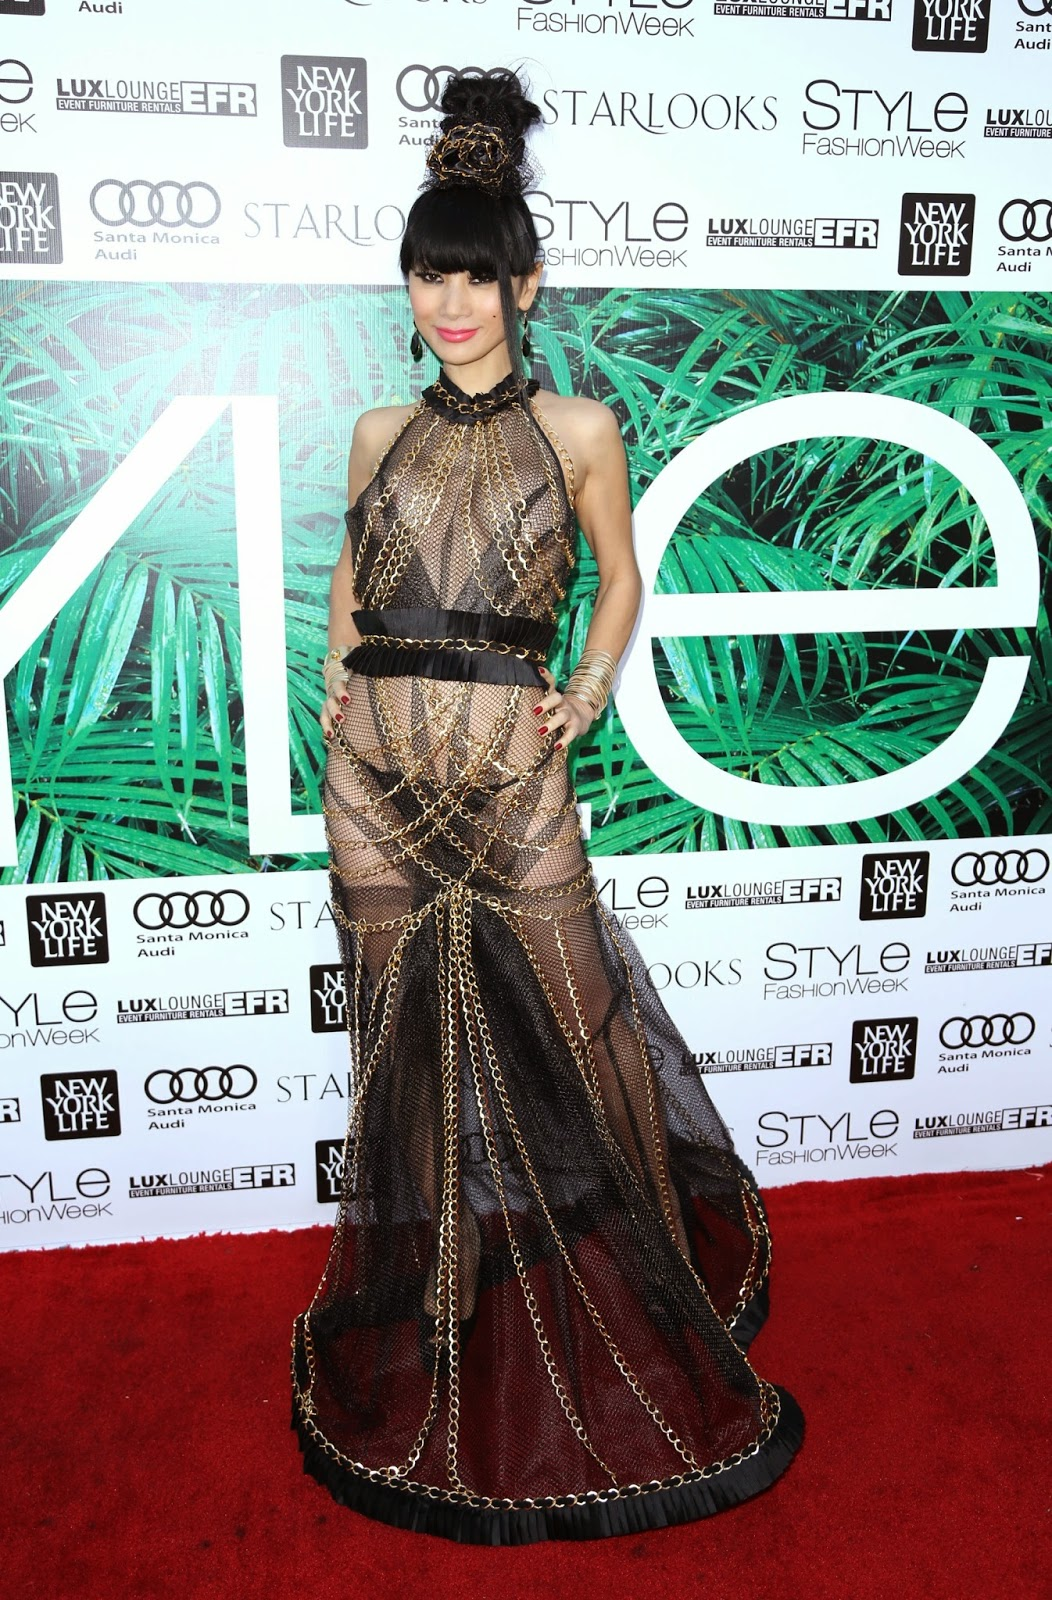 Actress @ Bai Ling - at the Los Angeles Style Fashion Week's